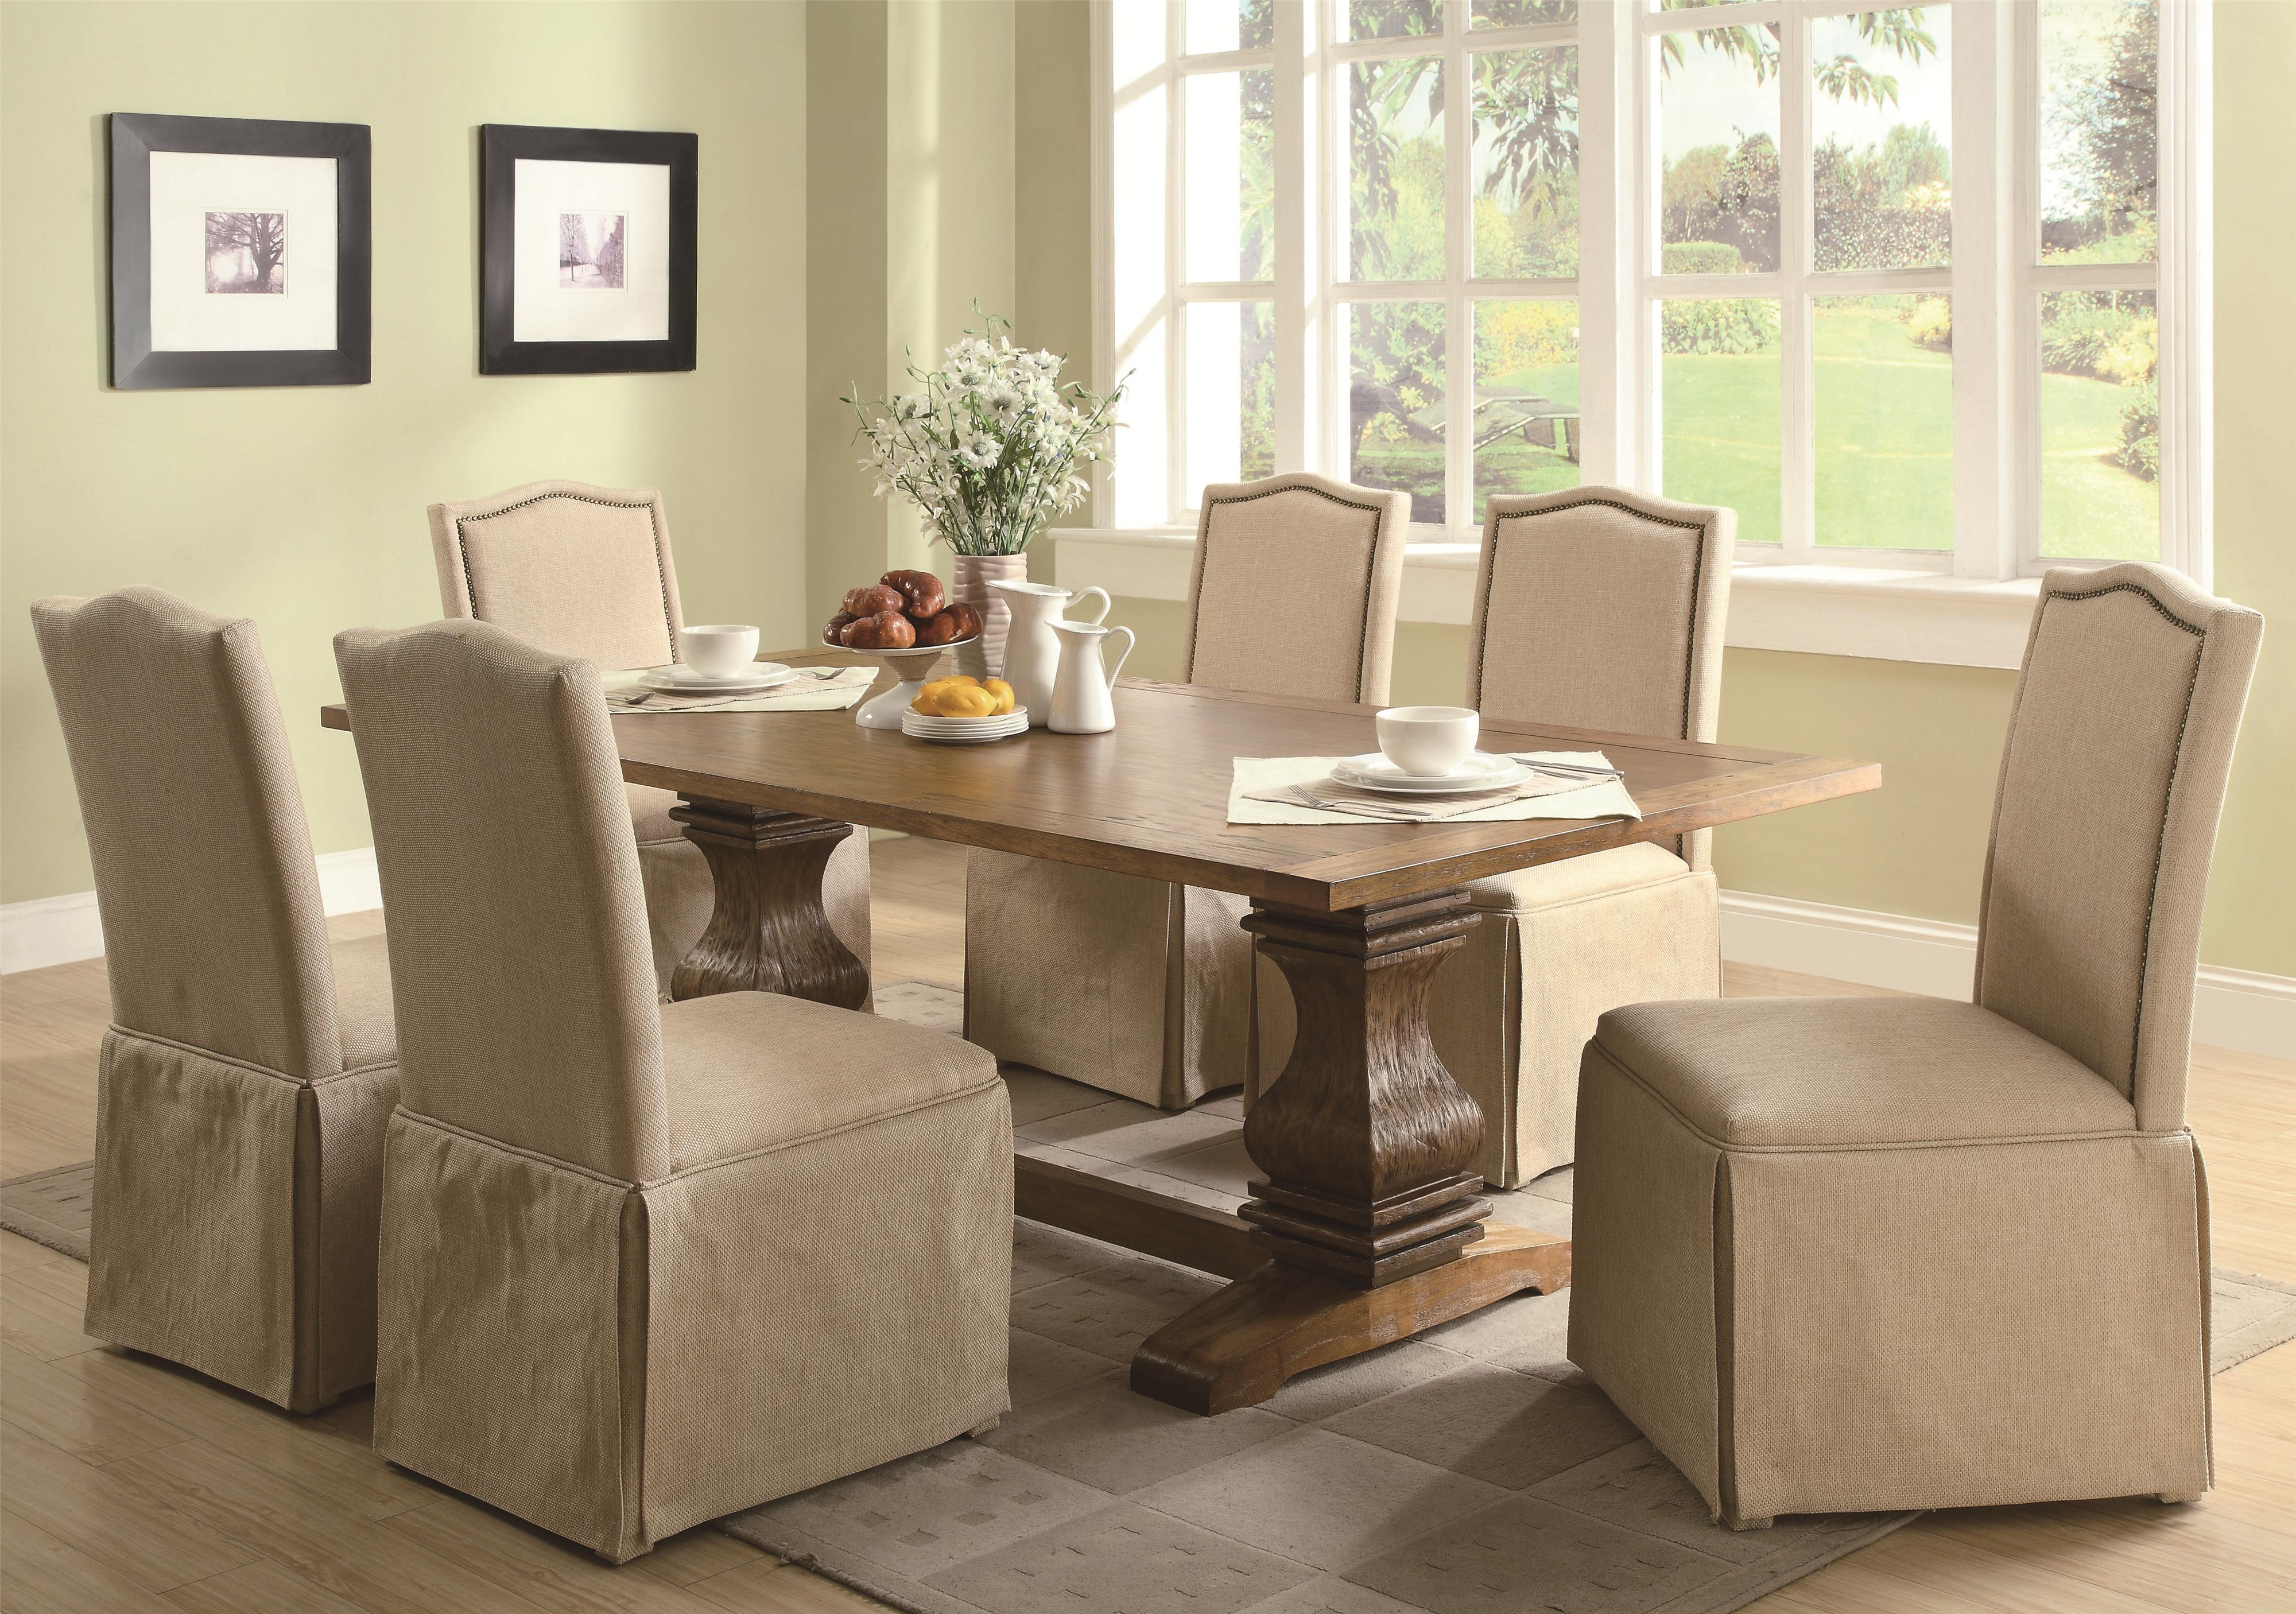 Good Coaster Parkins Parson Chair With Skirt   Value City Furniture   Dining  Side Chairs